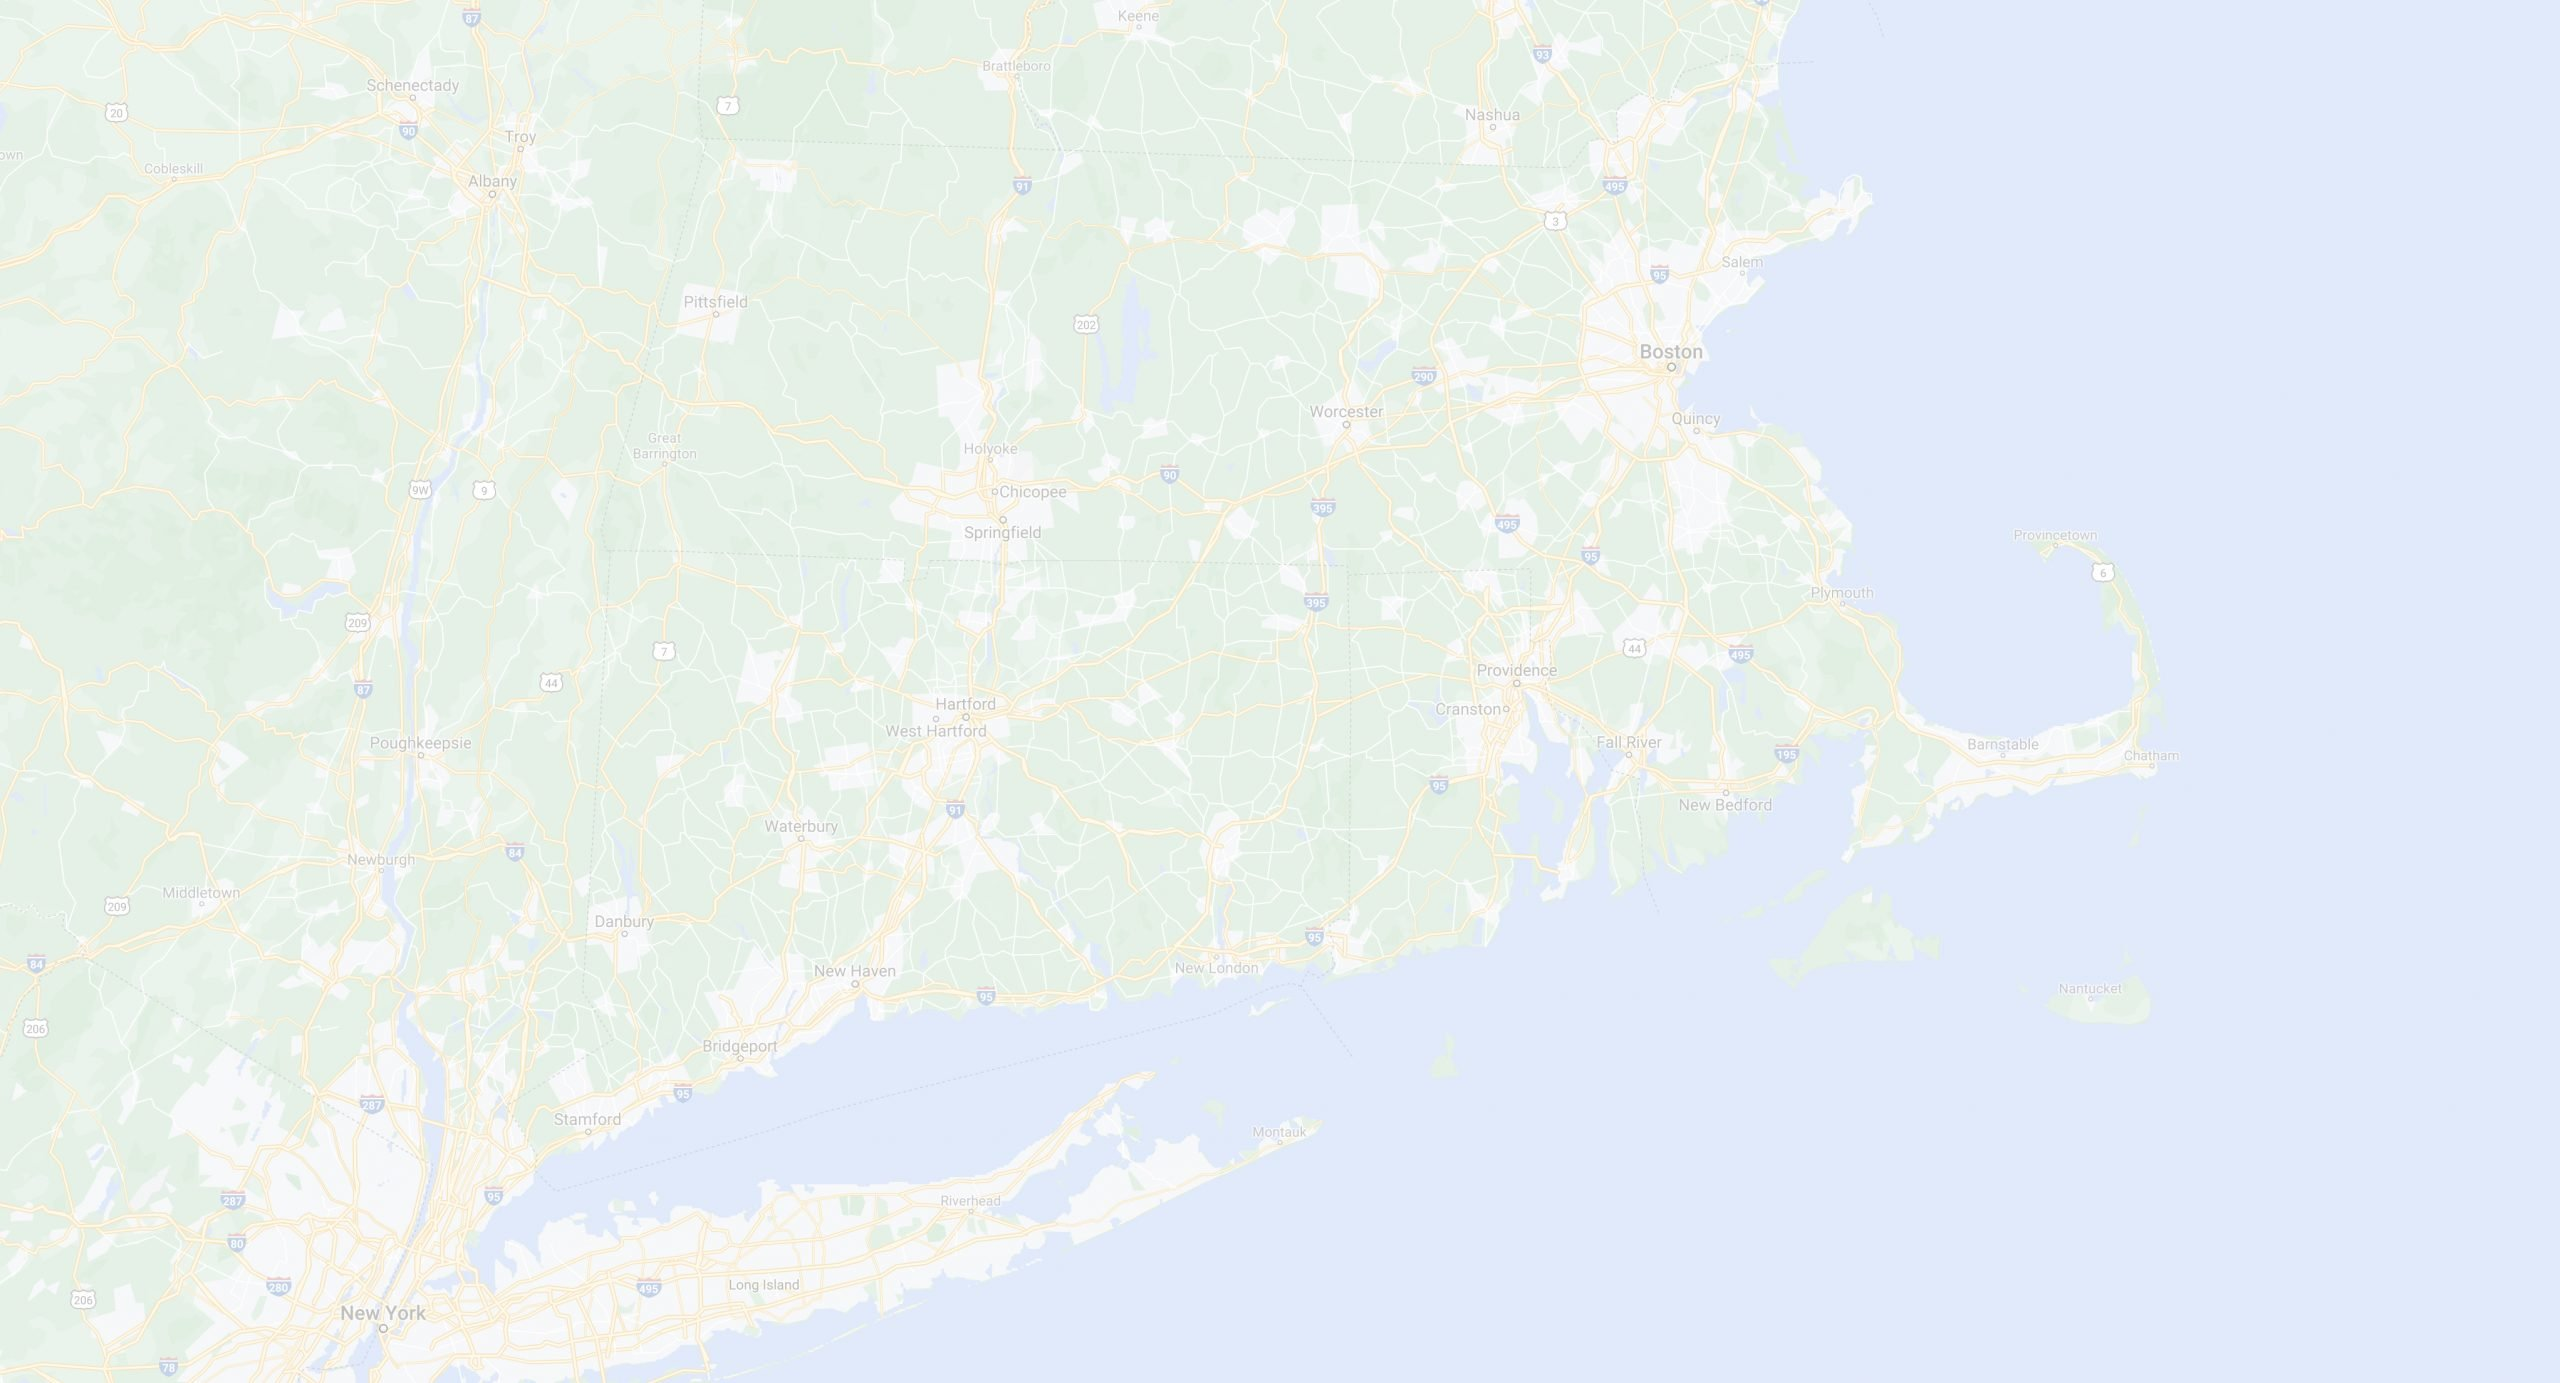 https://tykely.com/wp-content/uploads/2021/02/ri_ma_map3-scaled.jpg